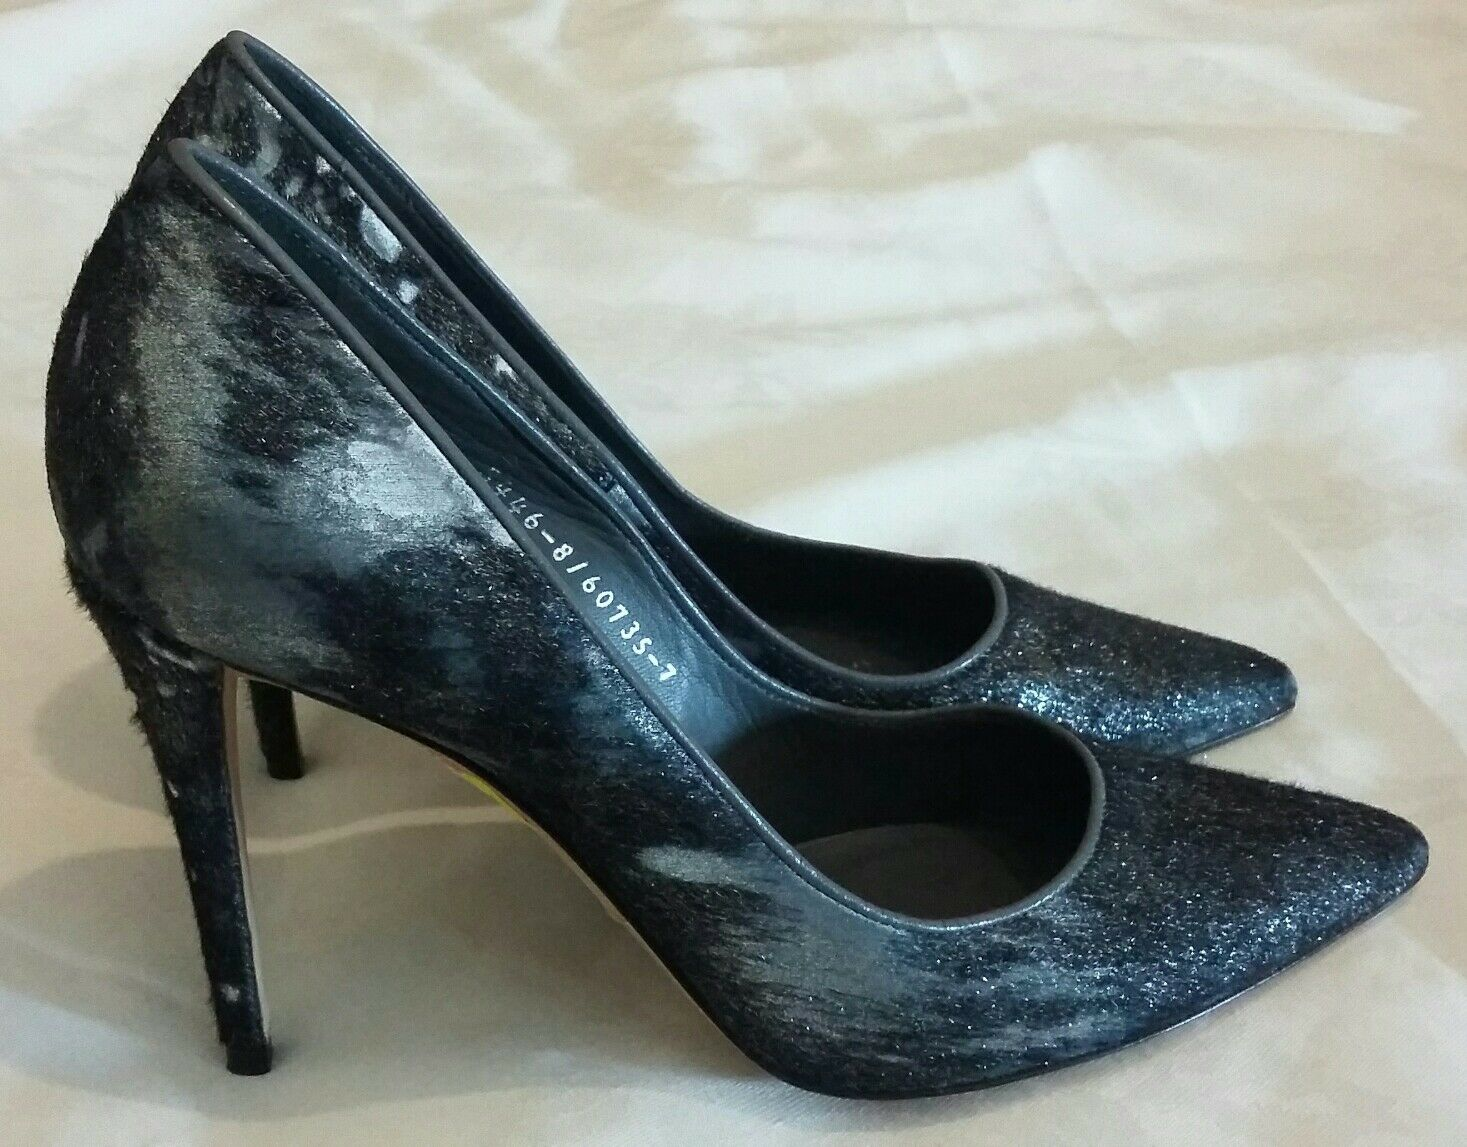 GINA High Heels Pointed Toe Fur Leather Slip-on shoes Black   Silver Uk 7 eu 40